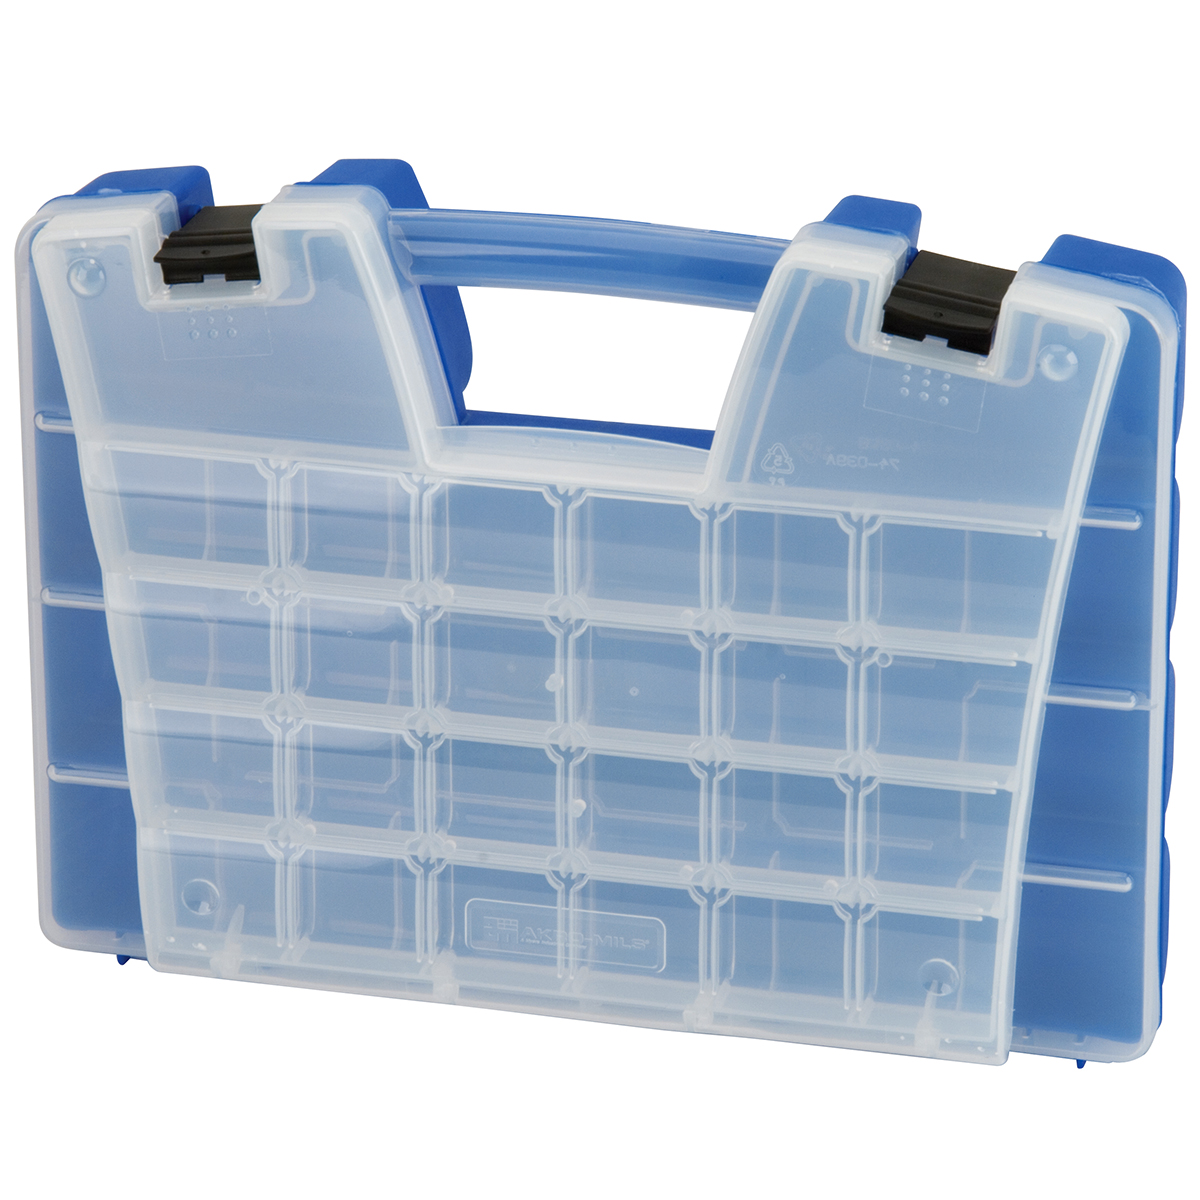 Item DISCONTINUED by Manufacturer.  Portable Organizer, 46 Compartment 15 x 11-5/16 x 3-1/4, Blue (06115).  This item sold in carton quantities of 1.